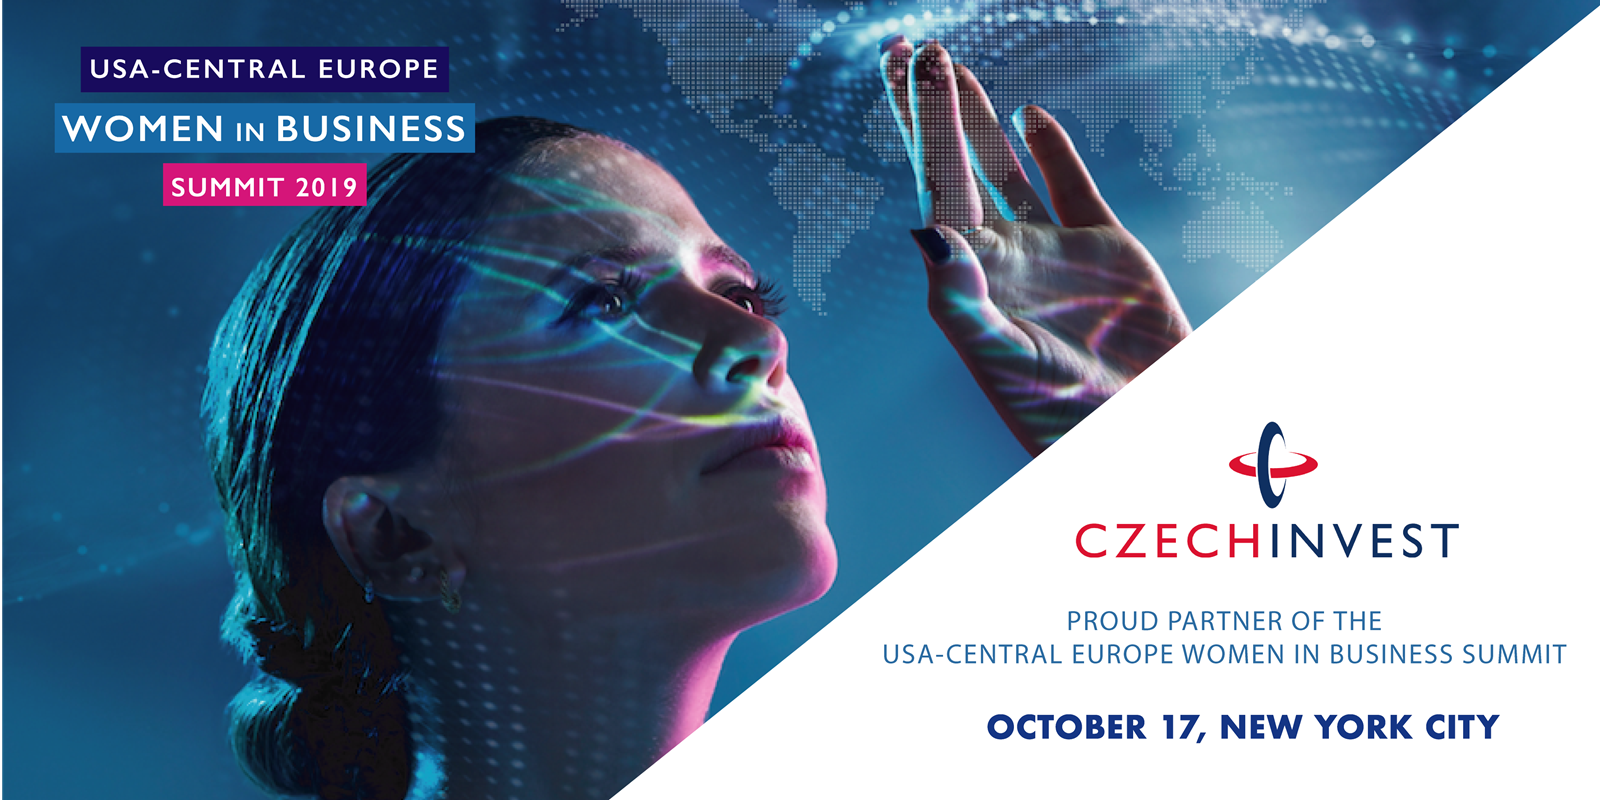 The USA-Central Europe Women in Business Summit attachment